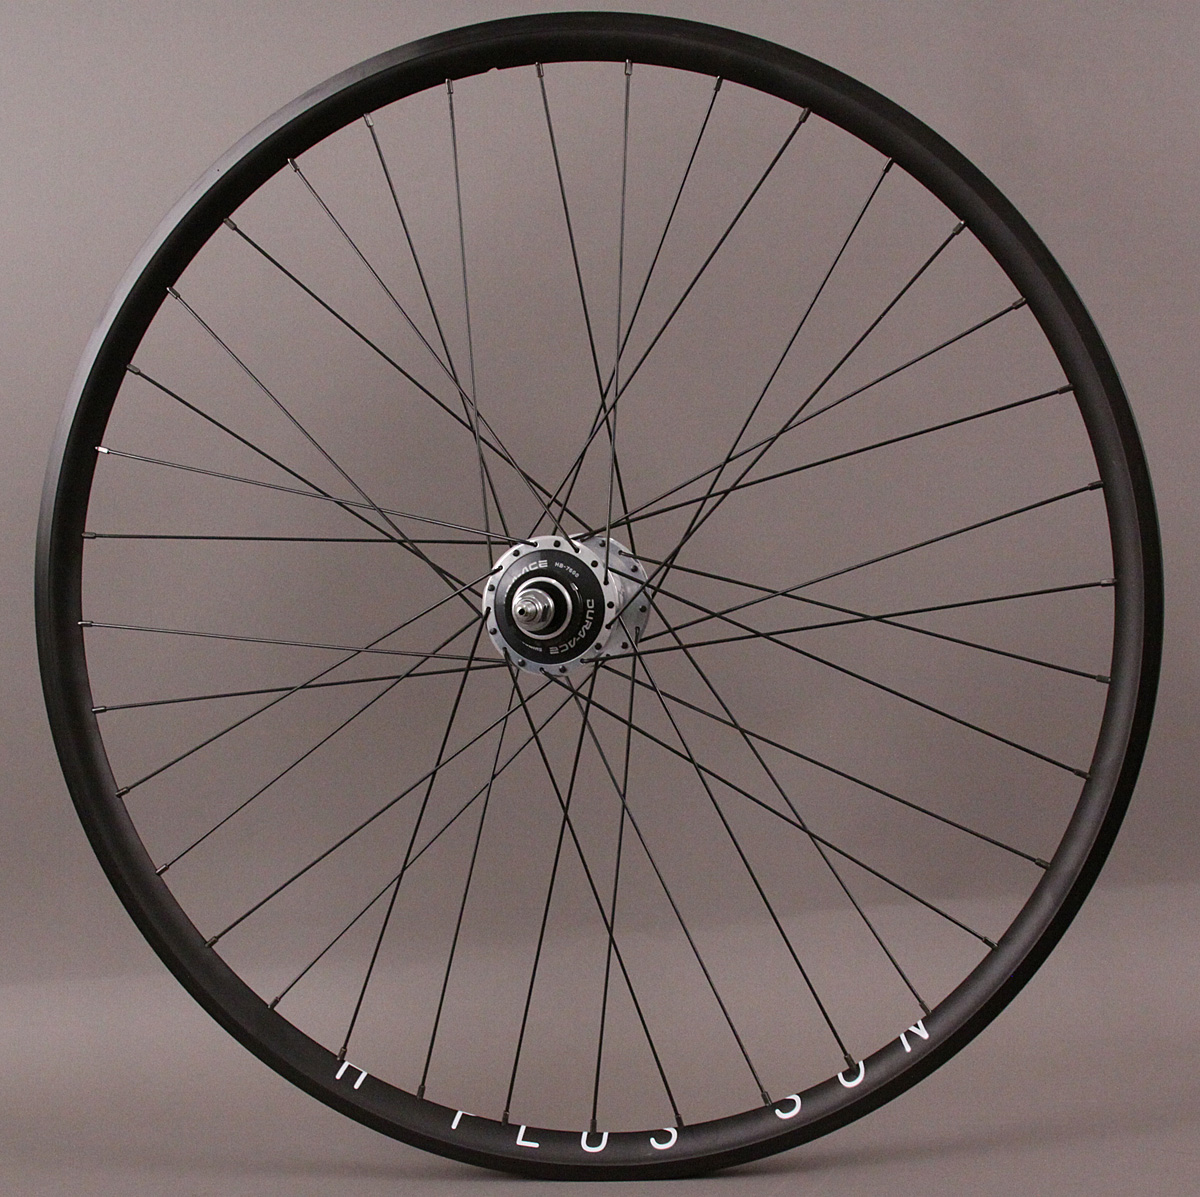 H Plus Son Archetype Rear Wheel Black Dura Ace 7600 Hub DT Comp